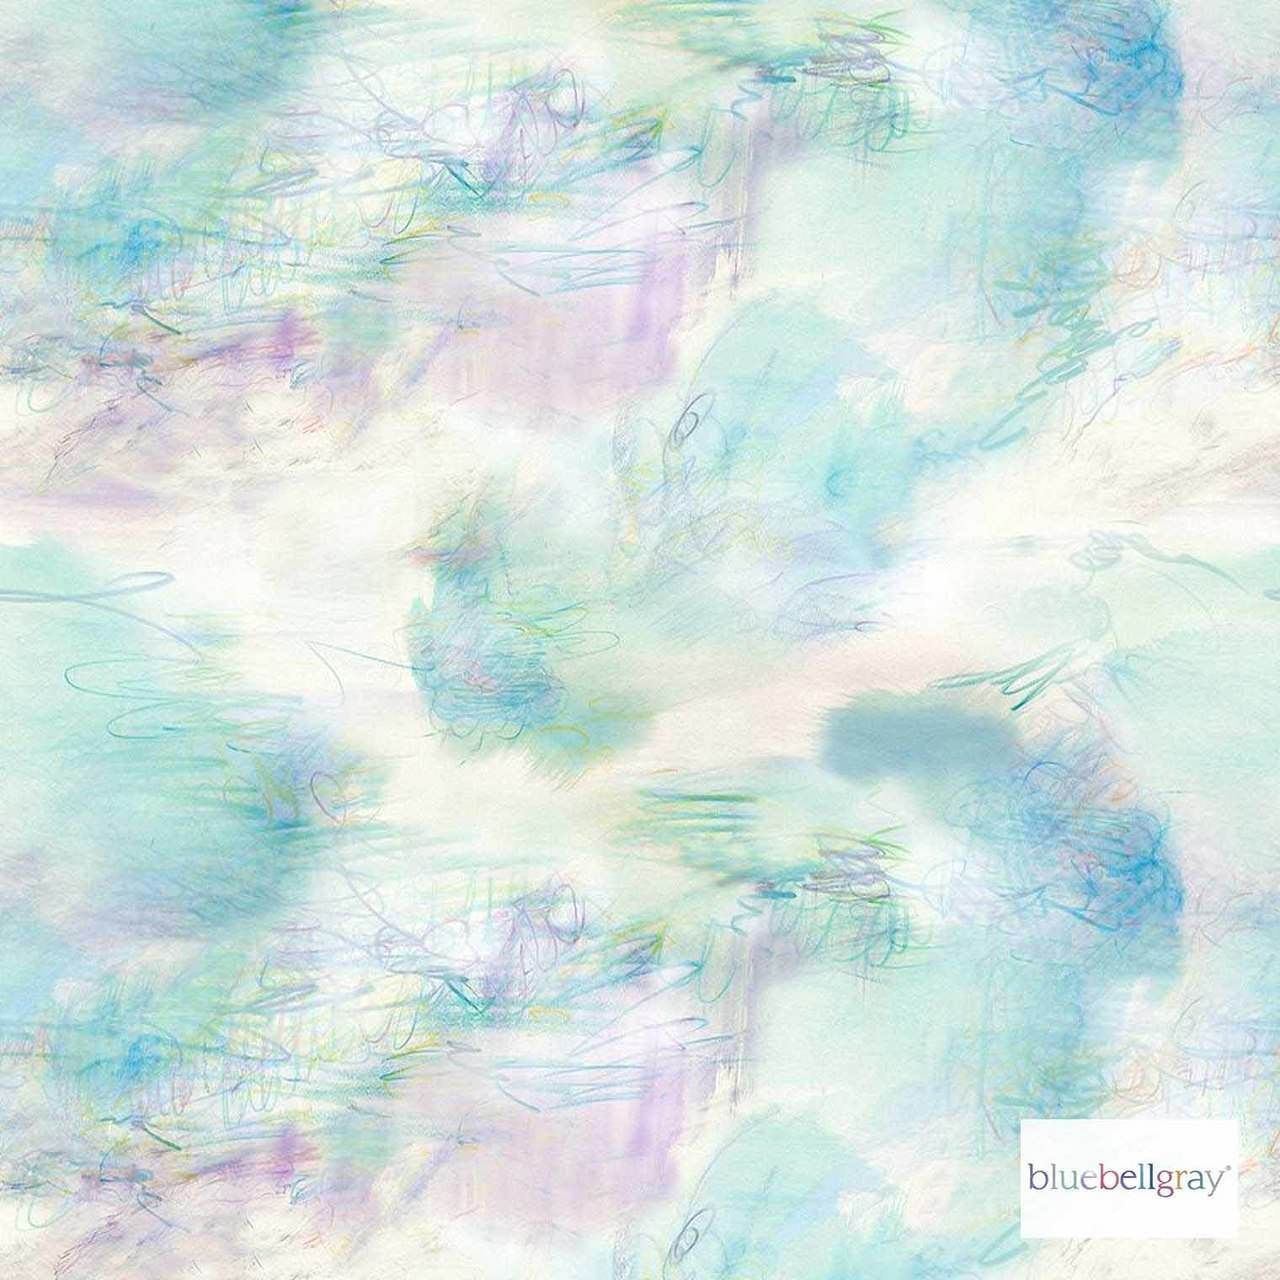 Watercolor Painting Wallpapers   Top Watercolor Painting 1280x1280